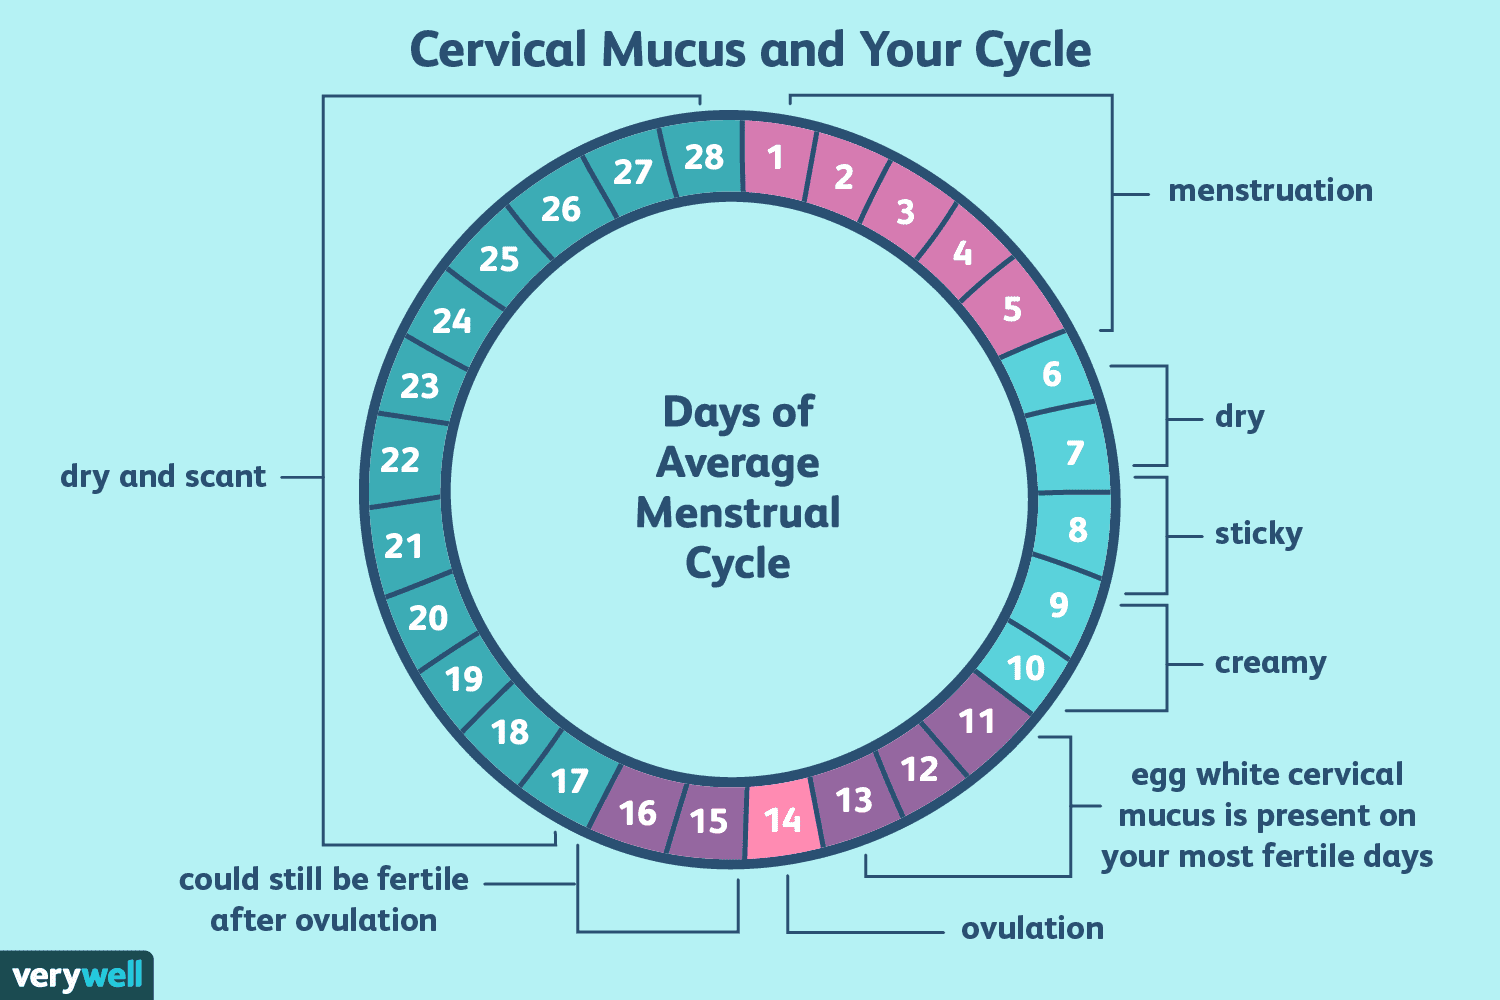 What Is Egg White Cervical Mucus (EWCM)?